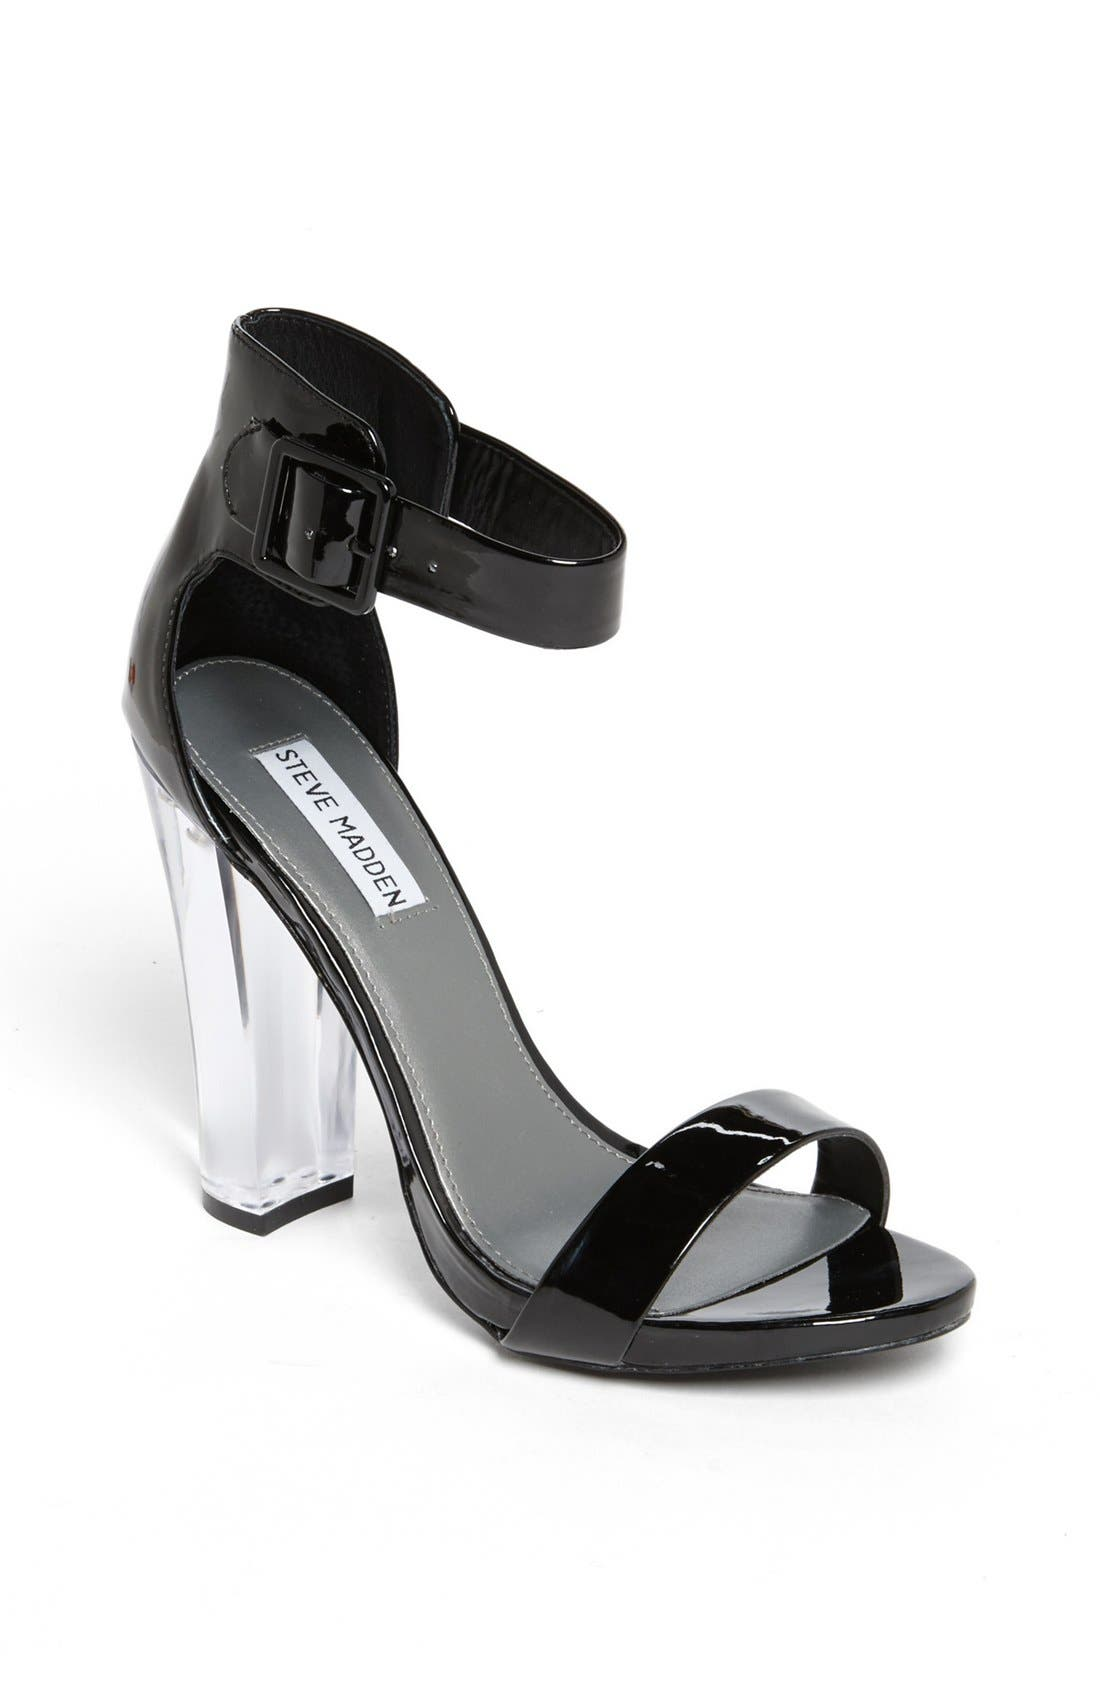 Alternate Image 1 Selected - Steve Madden 'Madame' Black Patent Sandal